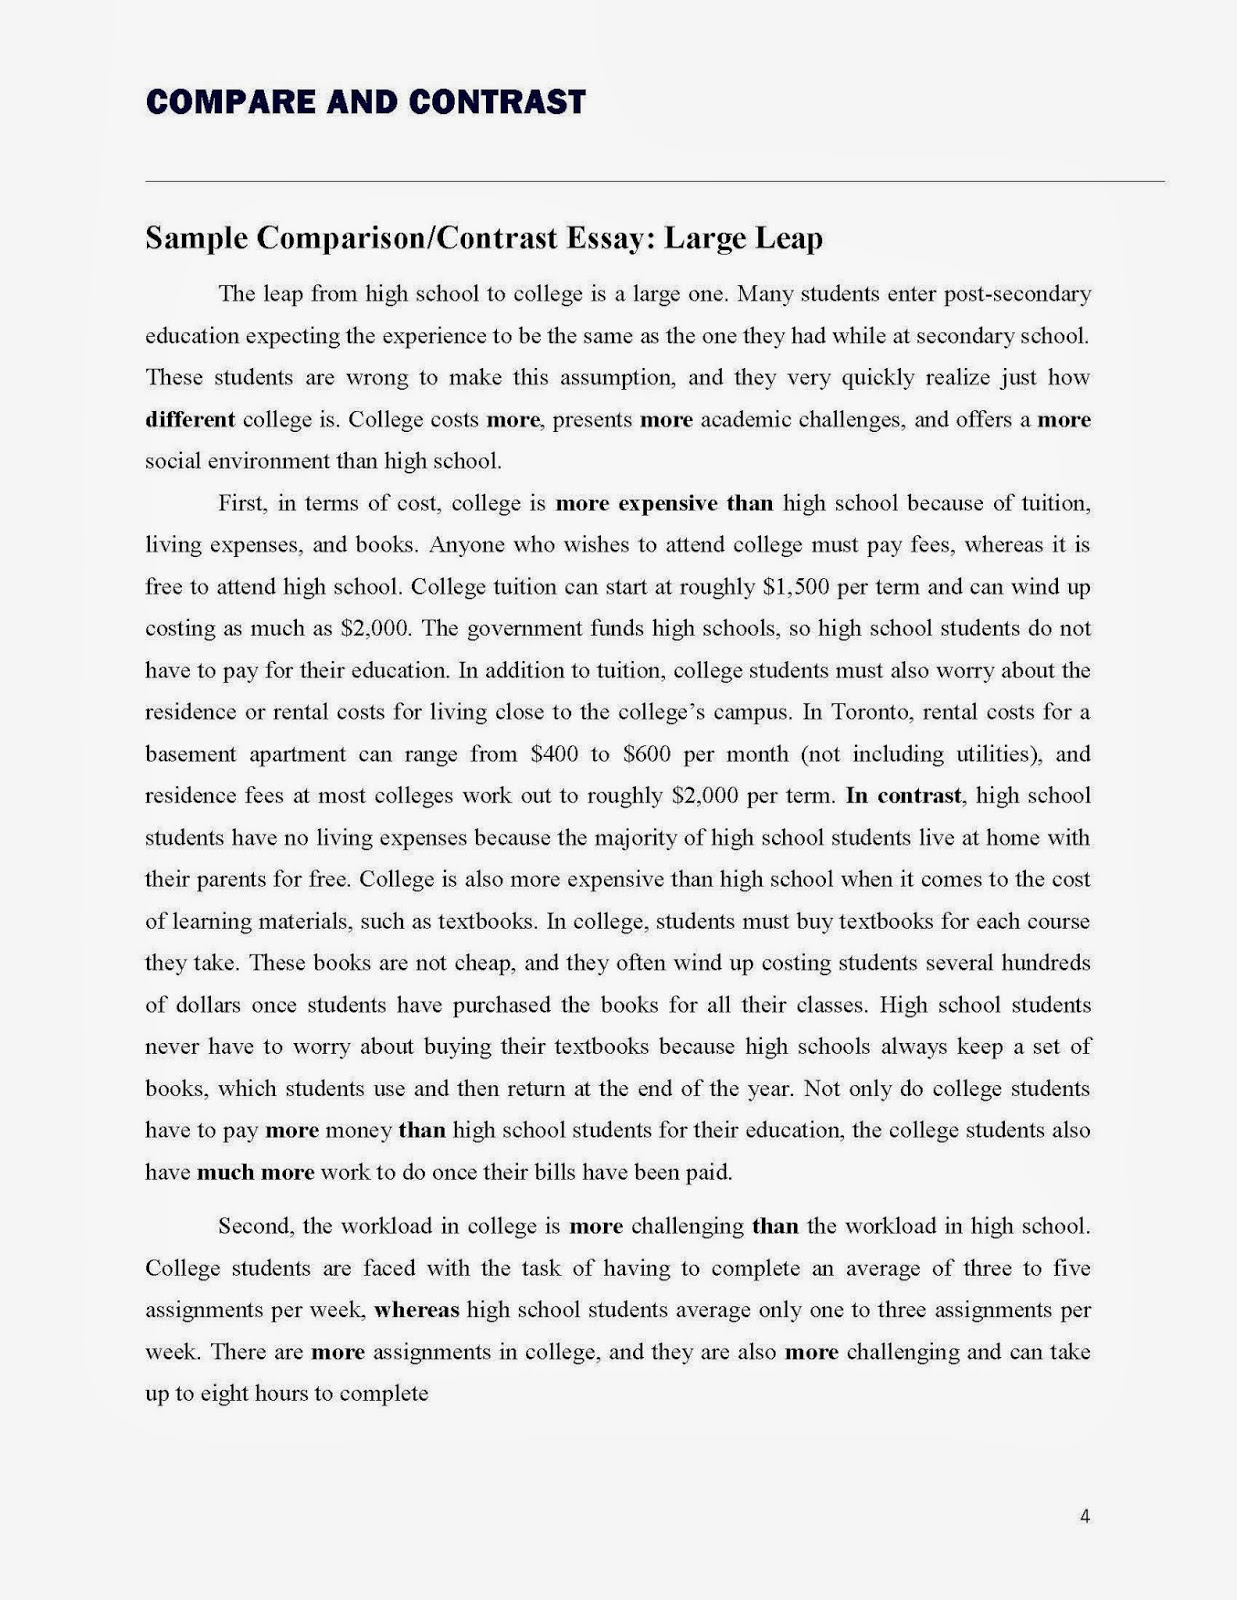 compare contrast essay restaurant Compare and contrast practice packet compare and contrast student packet doc the link above will open our practice packet for writing a compare and contrast essay this can be printed out if you lost your packet  emma's mexican restaurant daphne's carl jr burger king pick two restaurants to compare and contrast.